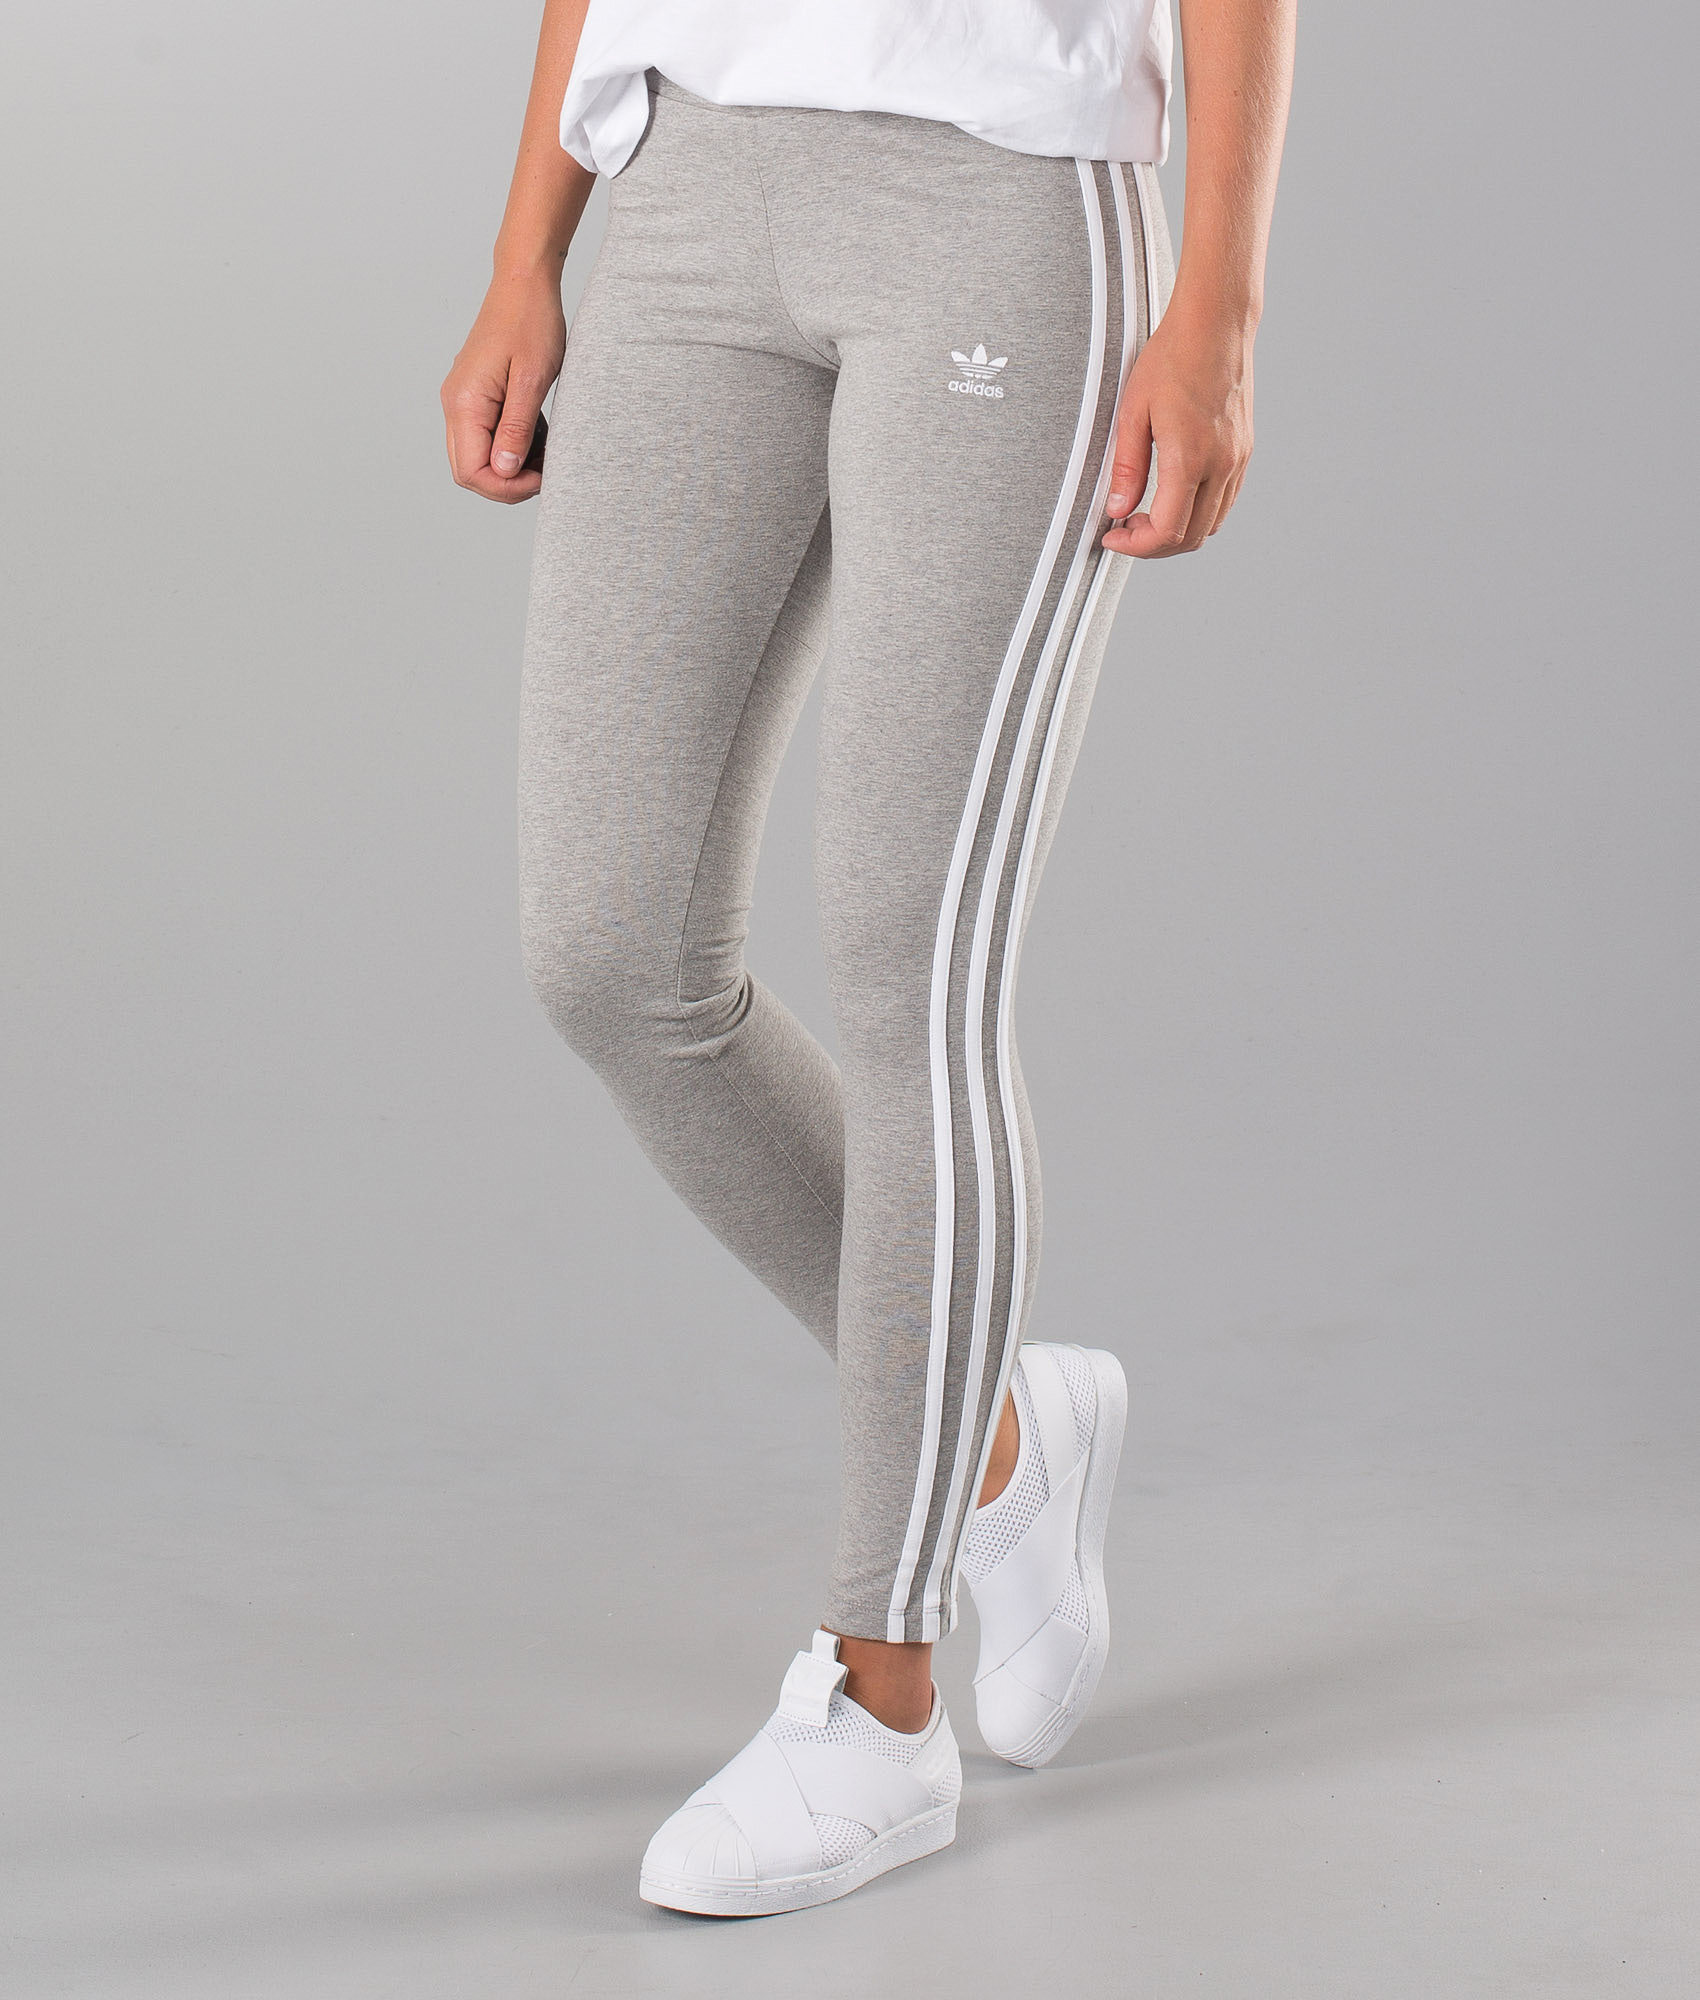 6bcfed64cdc66 Adidas Originals 3 Stripes Leggings Medium Grey Heather - Ridestore.com